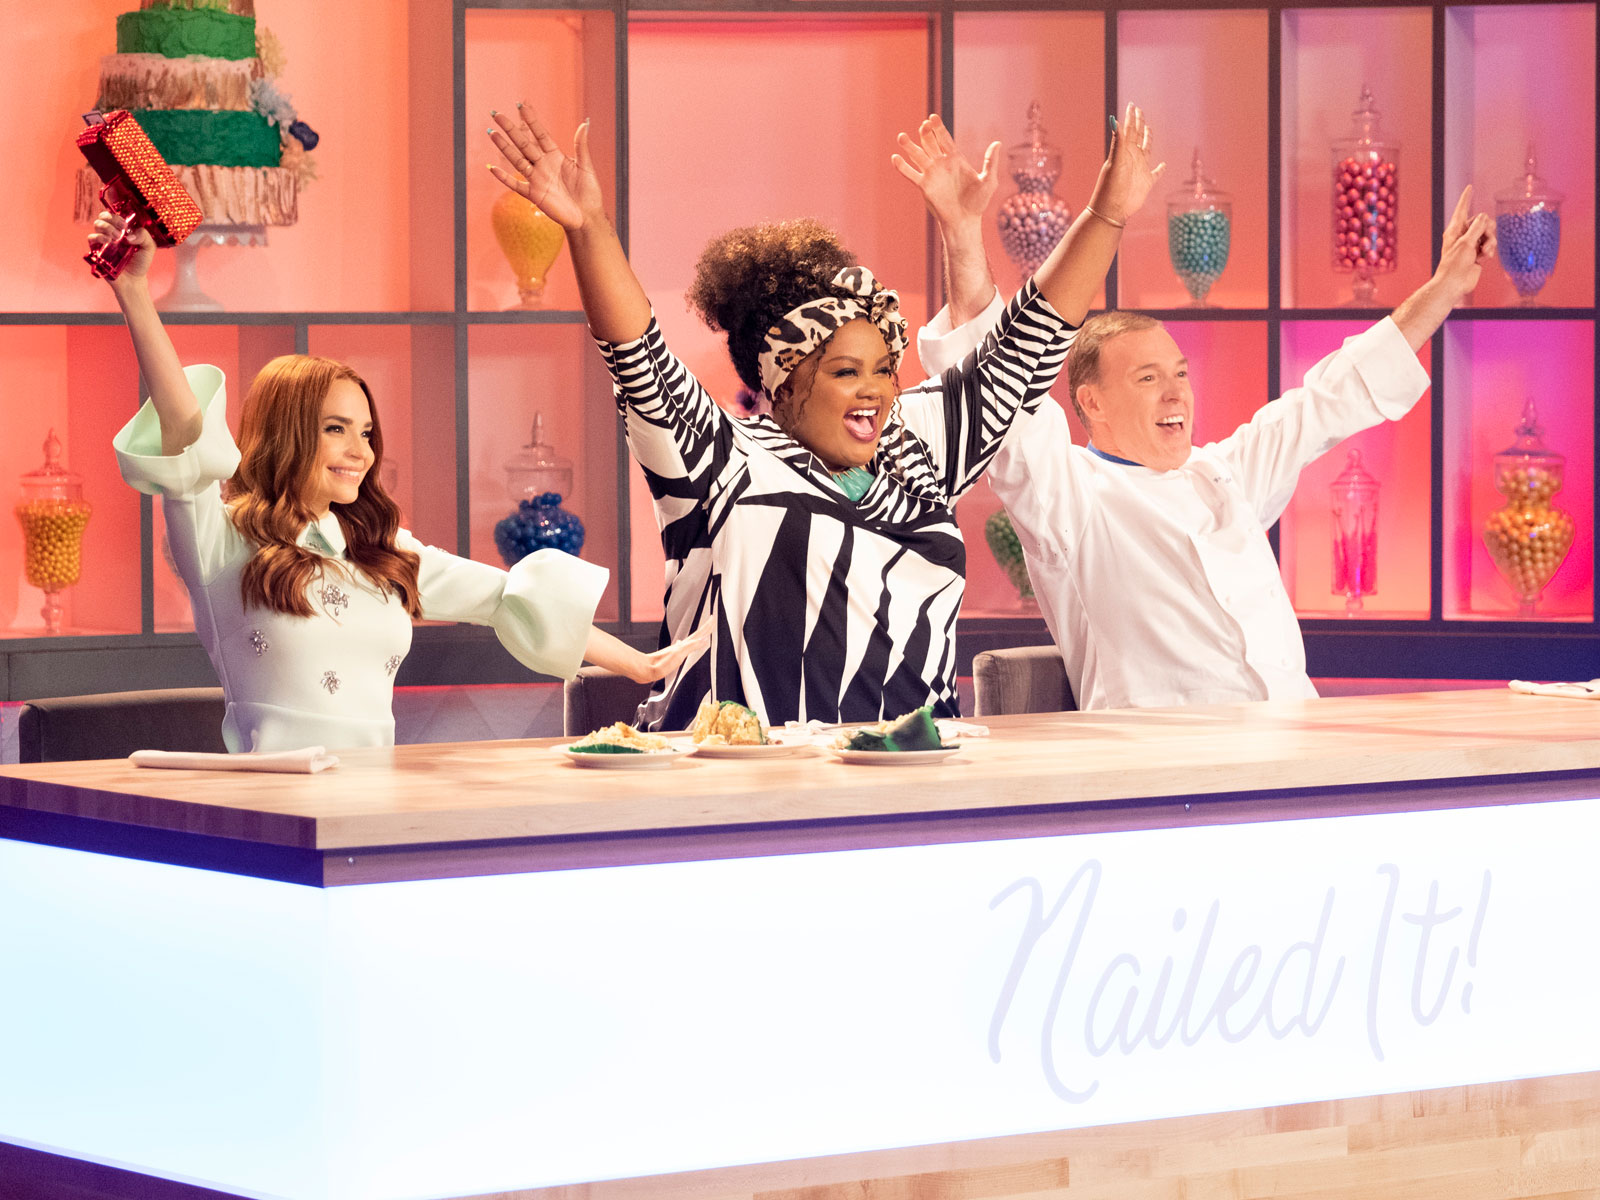 'Nailed It!' Season Three: Watch the Trailer and Get Ready to Feel a Whole Lot Better About Your Baking Skills